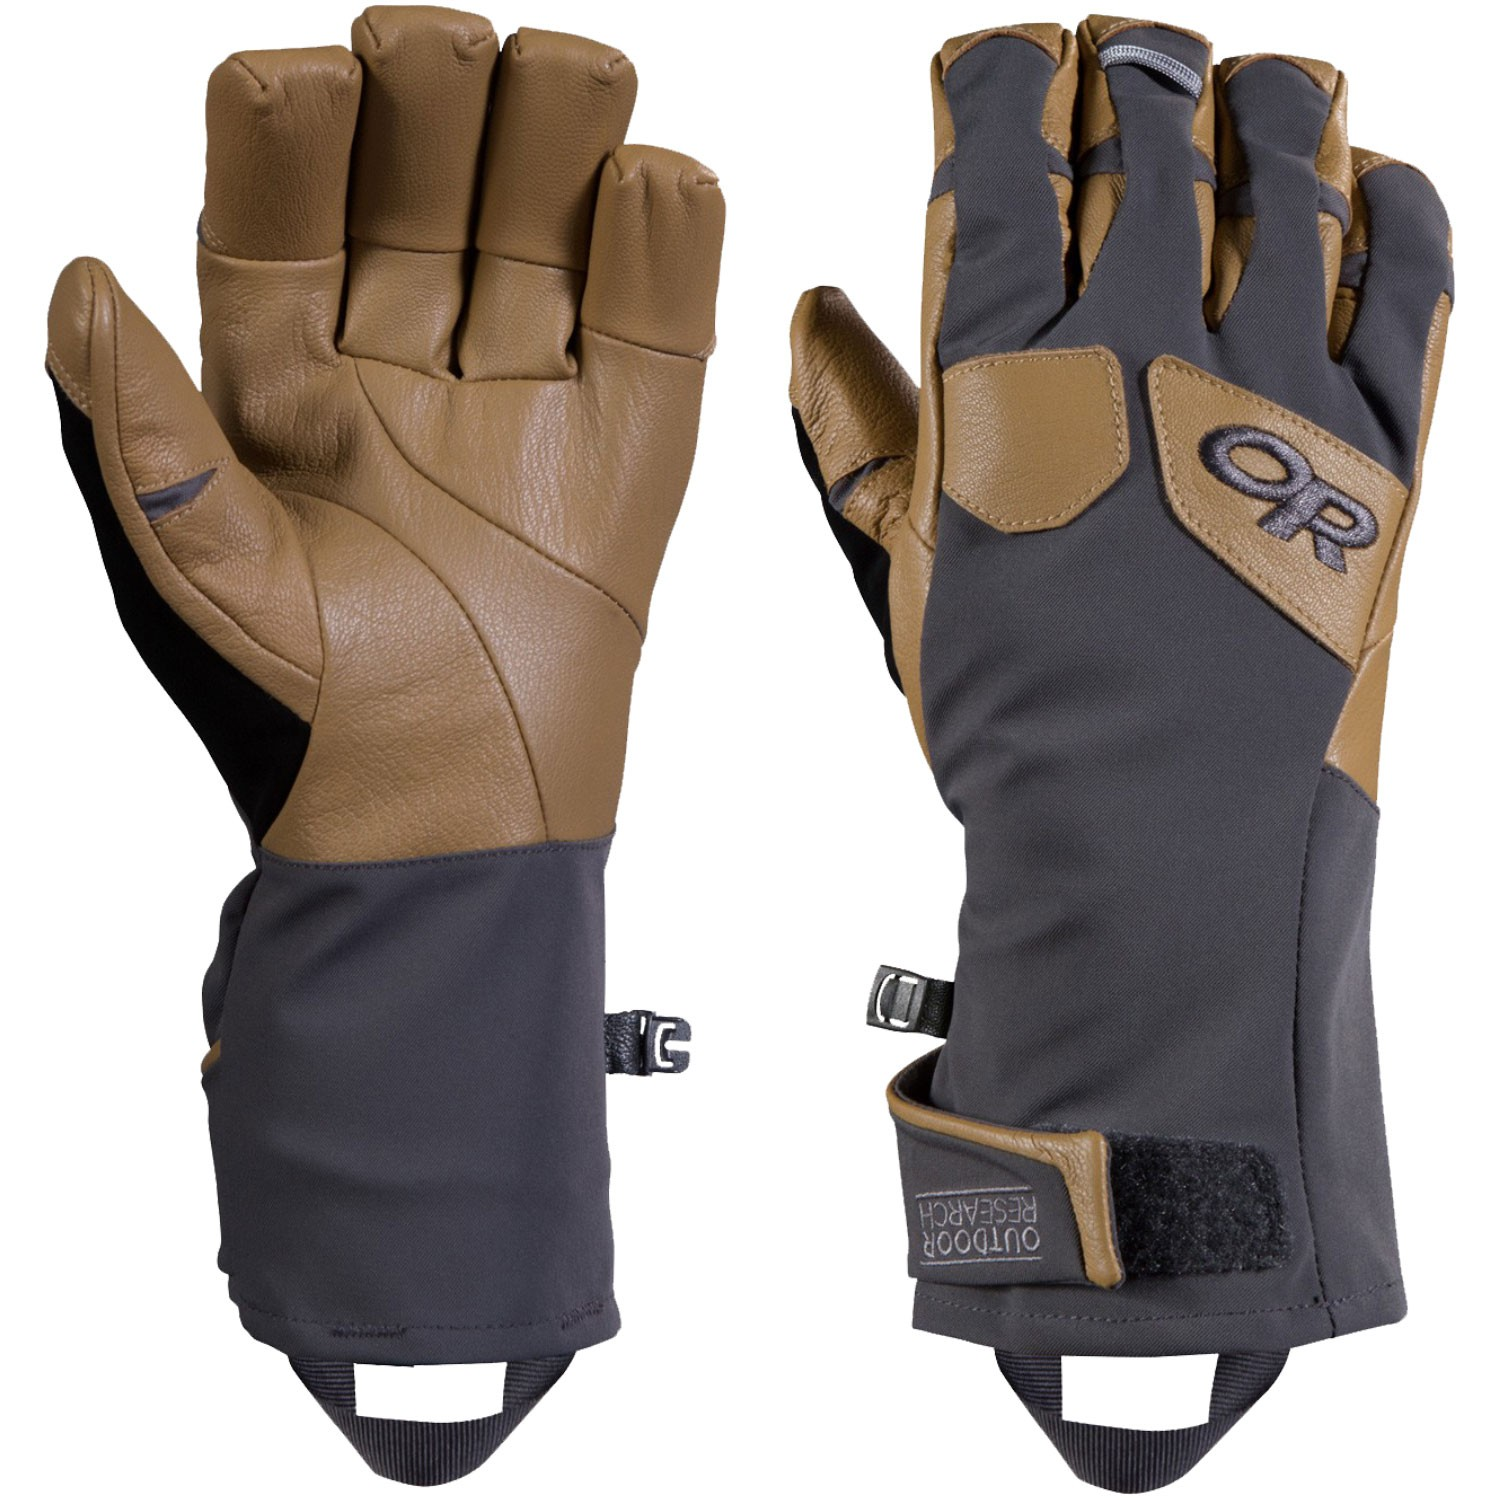 OUTDOOR RESEARCH - ExtraVert Gloves - Charcoal/Natural